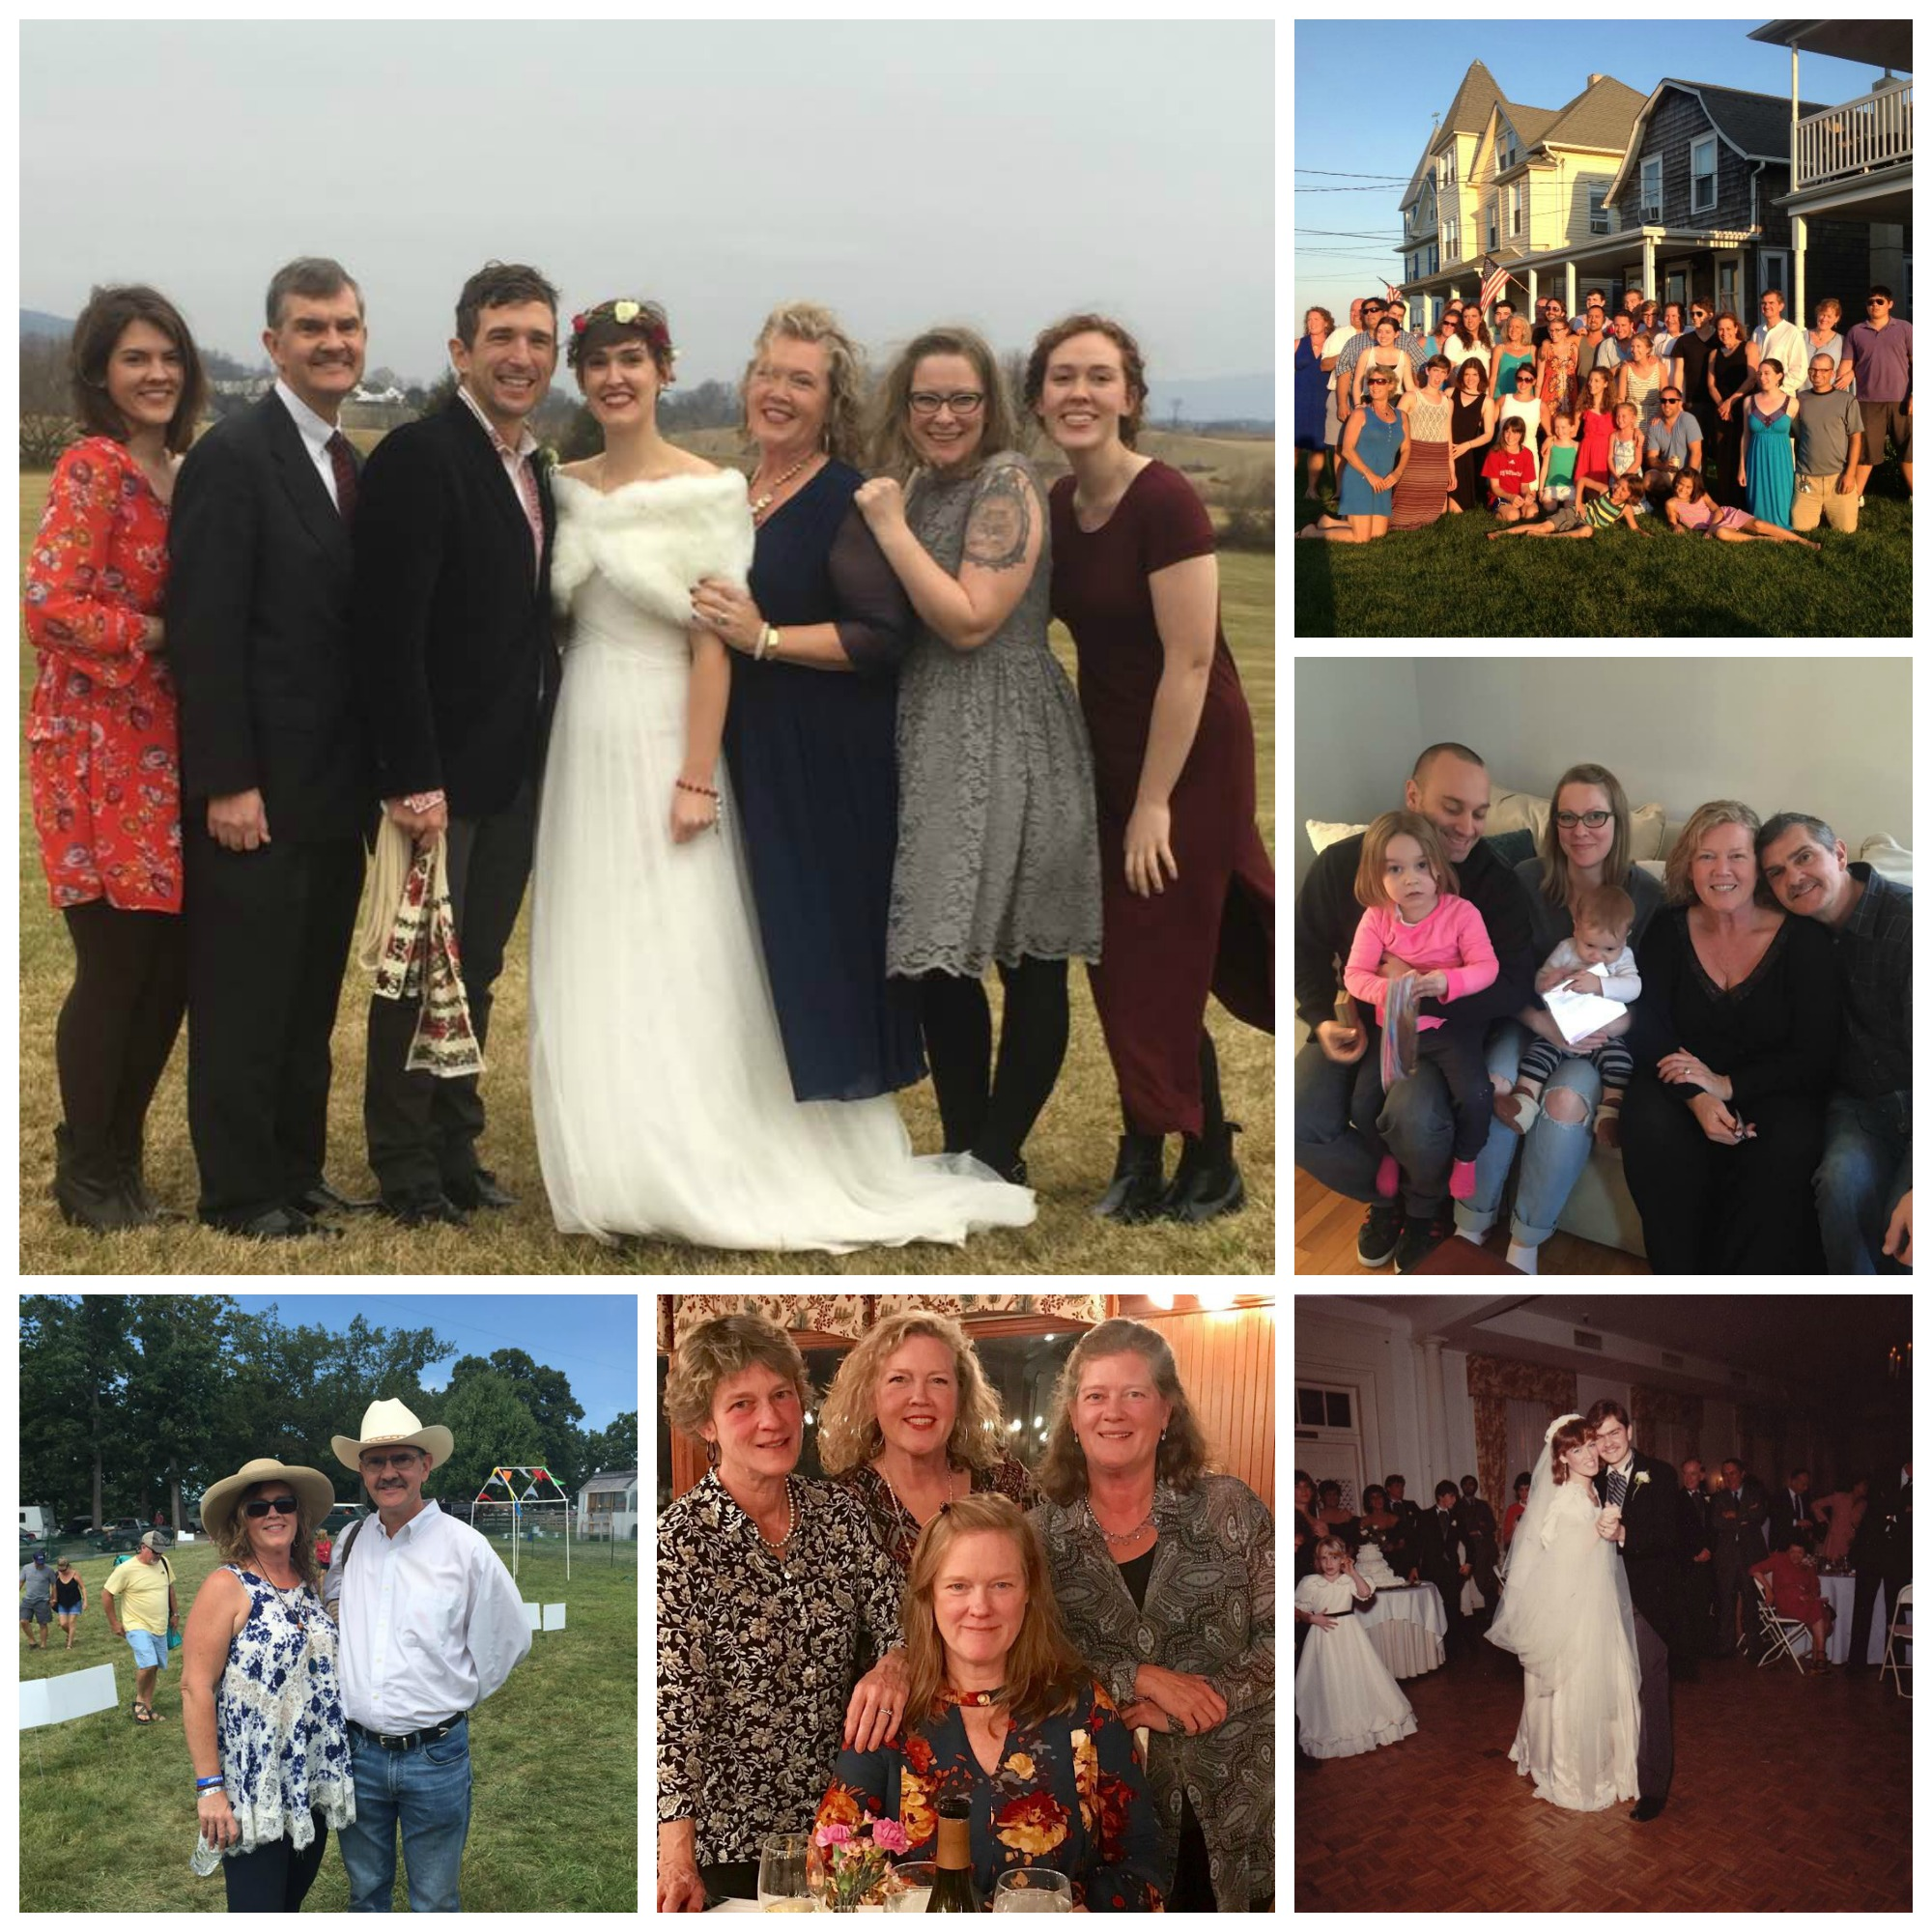 My Family - Catie and Alexander's Wedding, Chris and me, and our girls.Plus our extended family reunion, Lauren and Tony and fam, Chris' and my wedding, sisters gathering, and Chris and me at the Appaloosa music festival created by Catie's hubby's band Scythian.